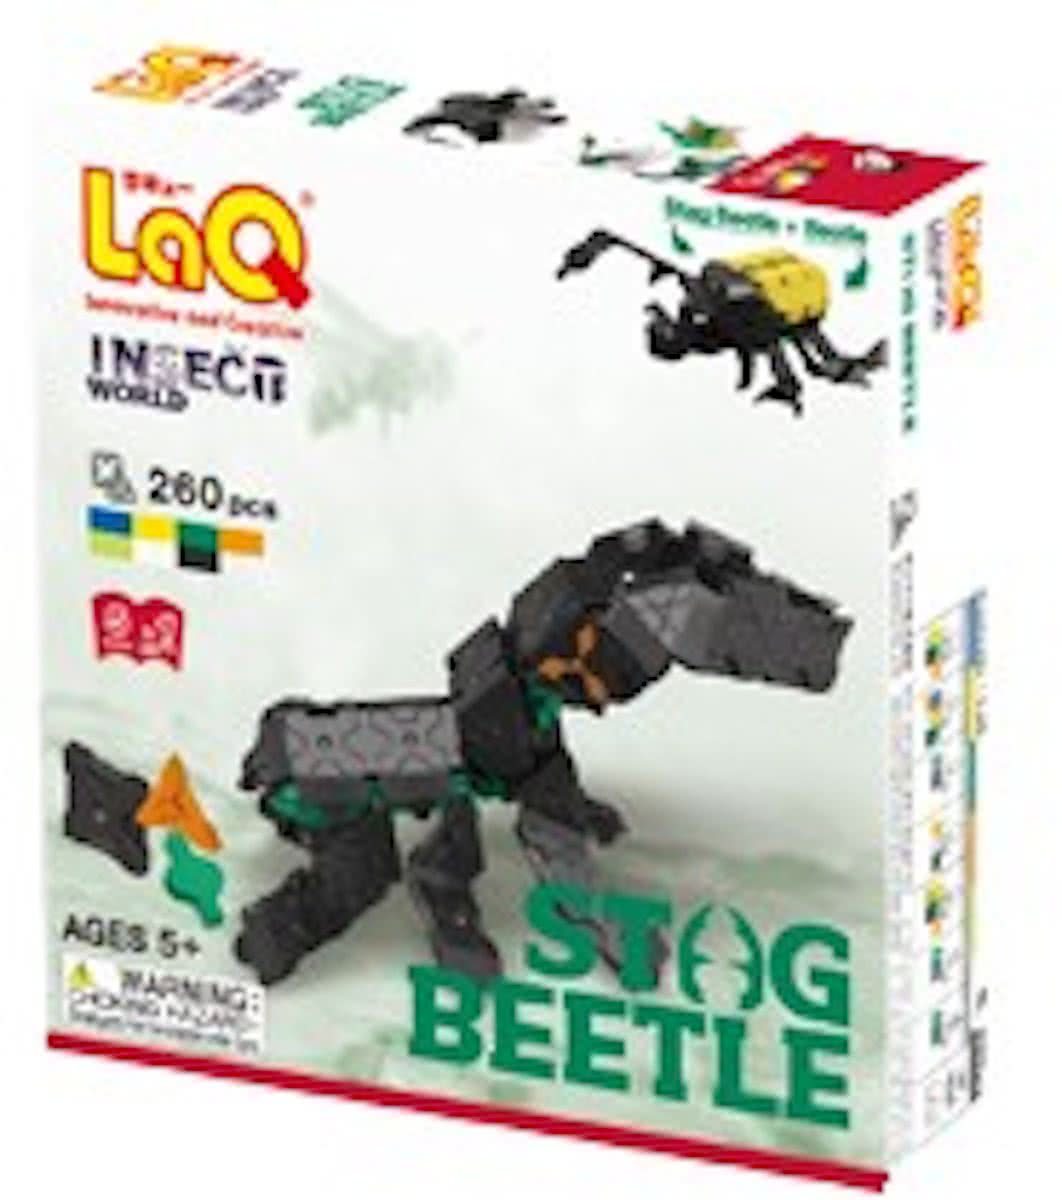 Insect World - Stag Beetle (260) *op=op*